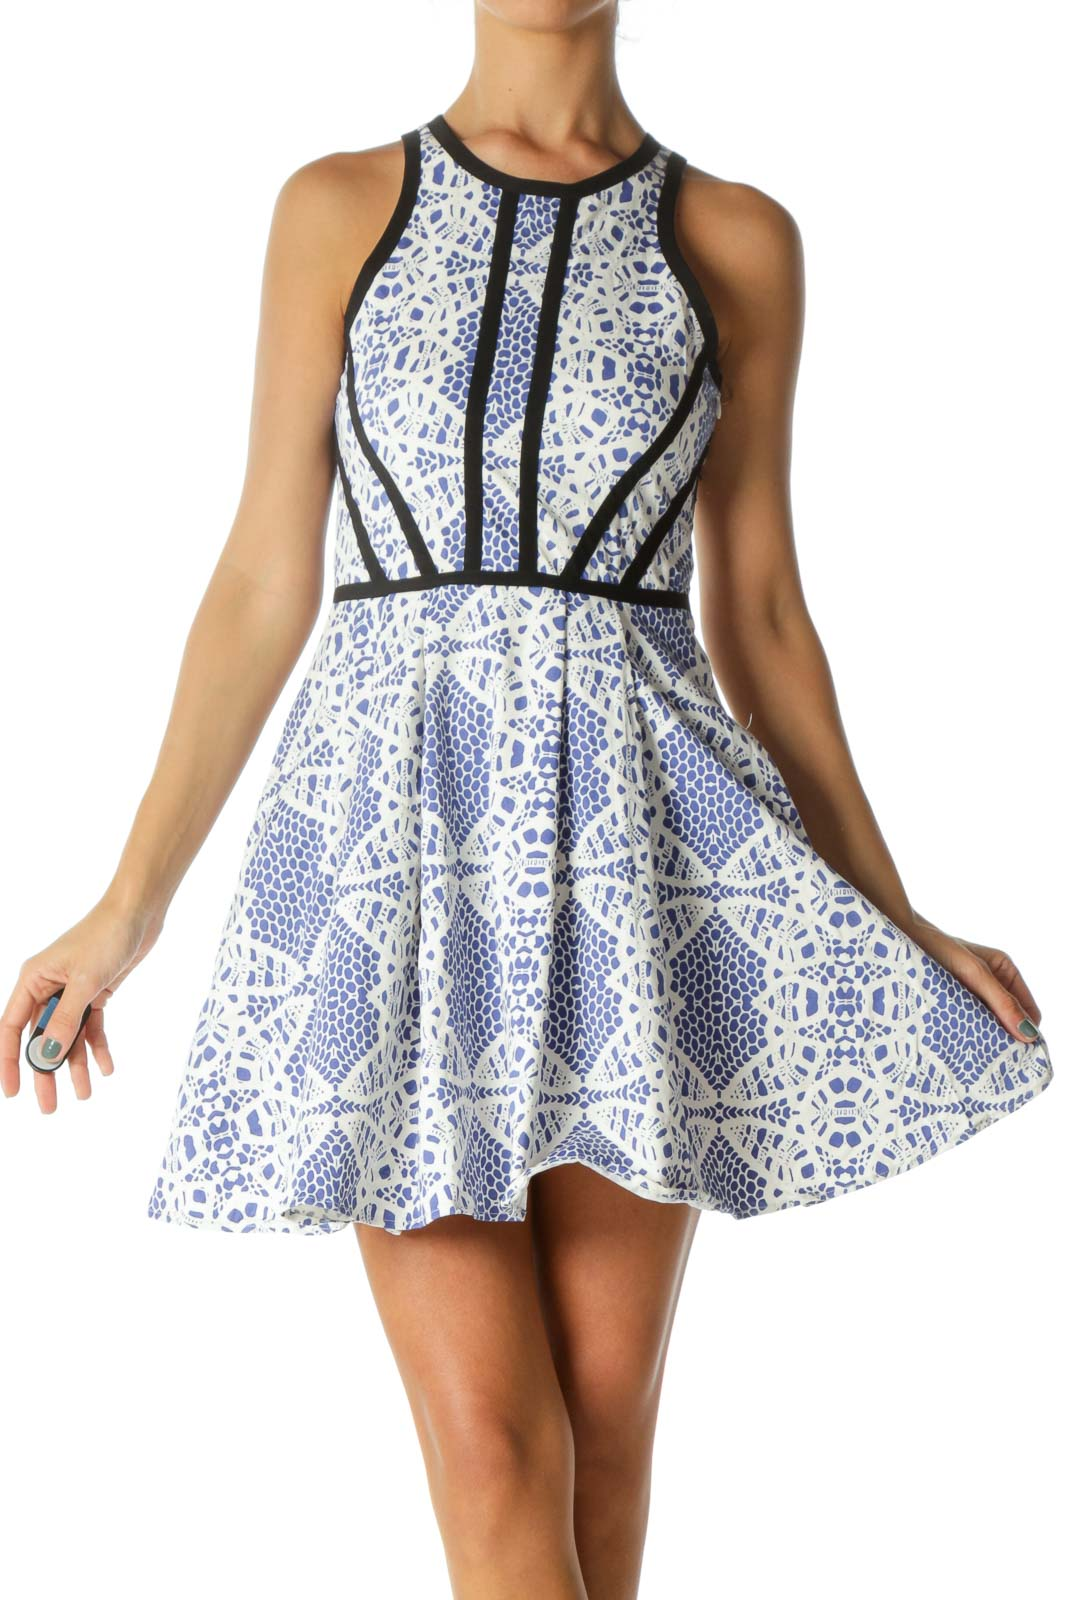 Blue White Black-Piping Detail Print Stretch Pocketed Dress Front